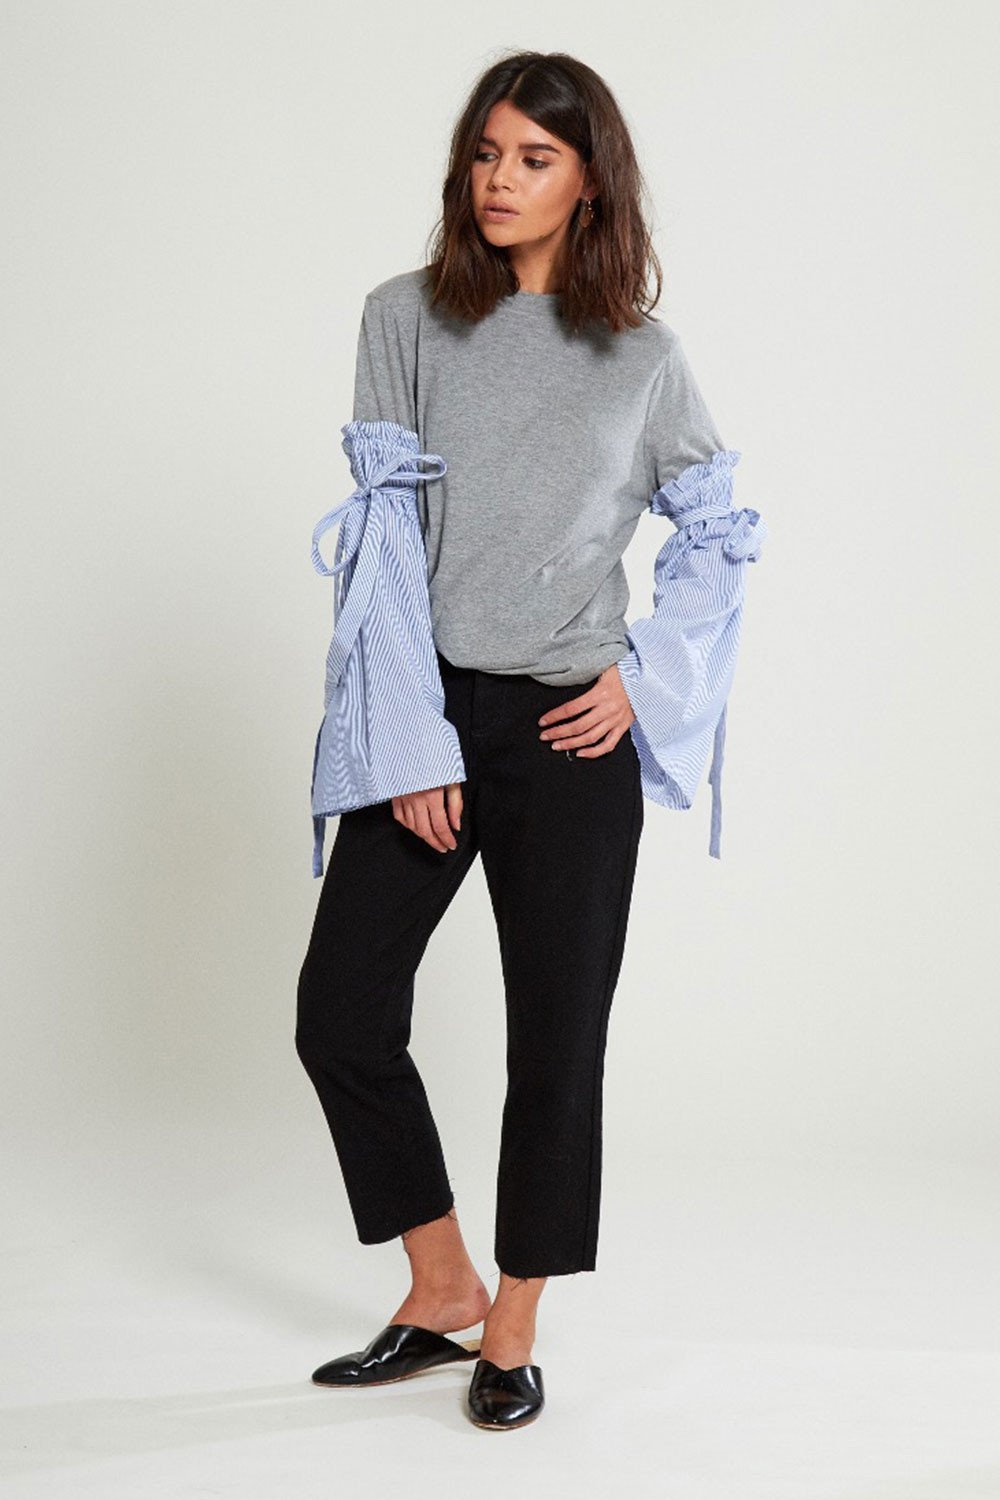 Shop Neon Rose Top Neon Rose Stripe Cotton Sleeve T-shirt Second Thread